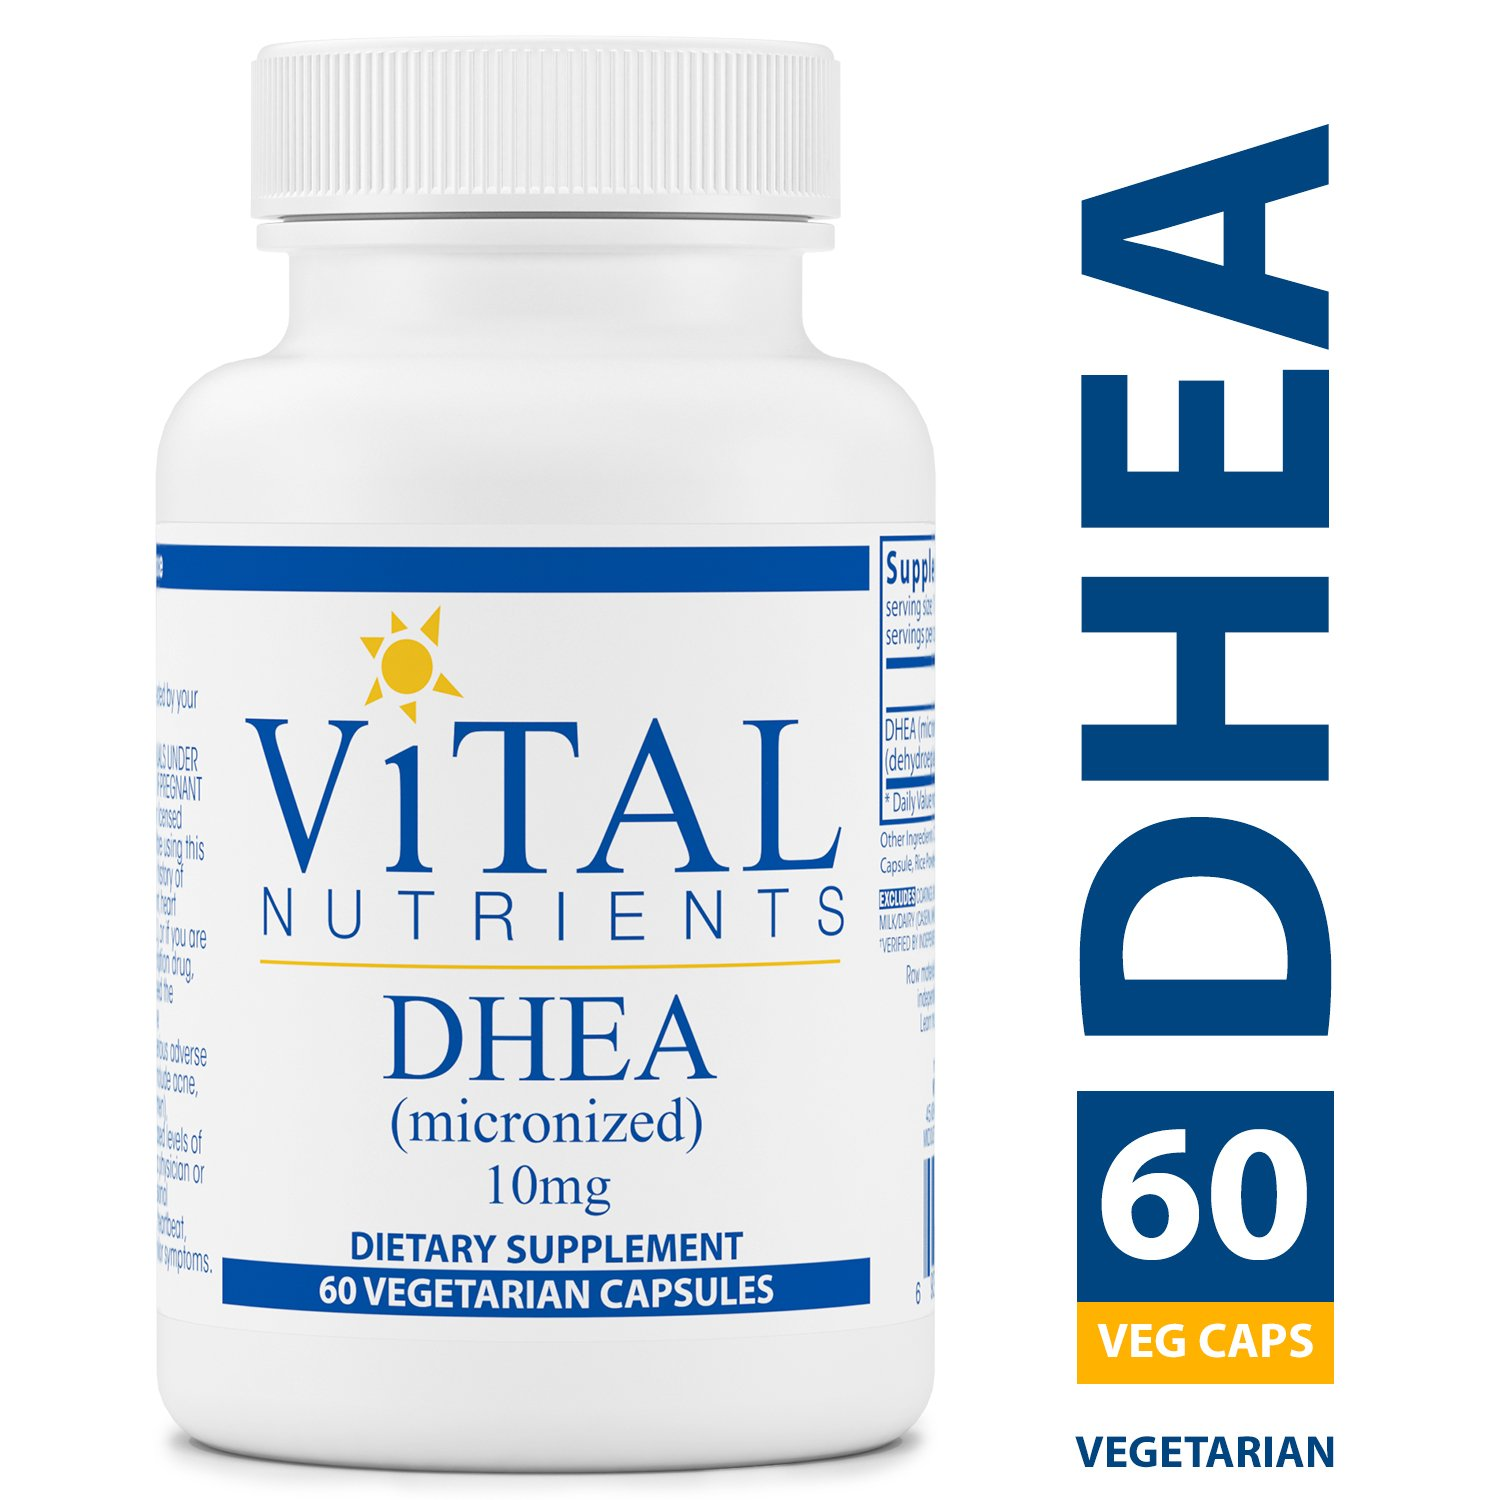 Vital Nutrients - DHEA (Micronized) 10 mg - Supports Metabolism, Hormone Levels and Energy Levels - 60 Capsules